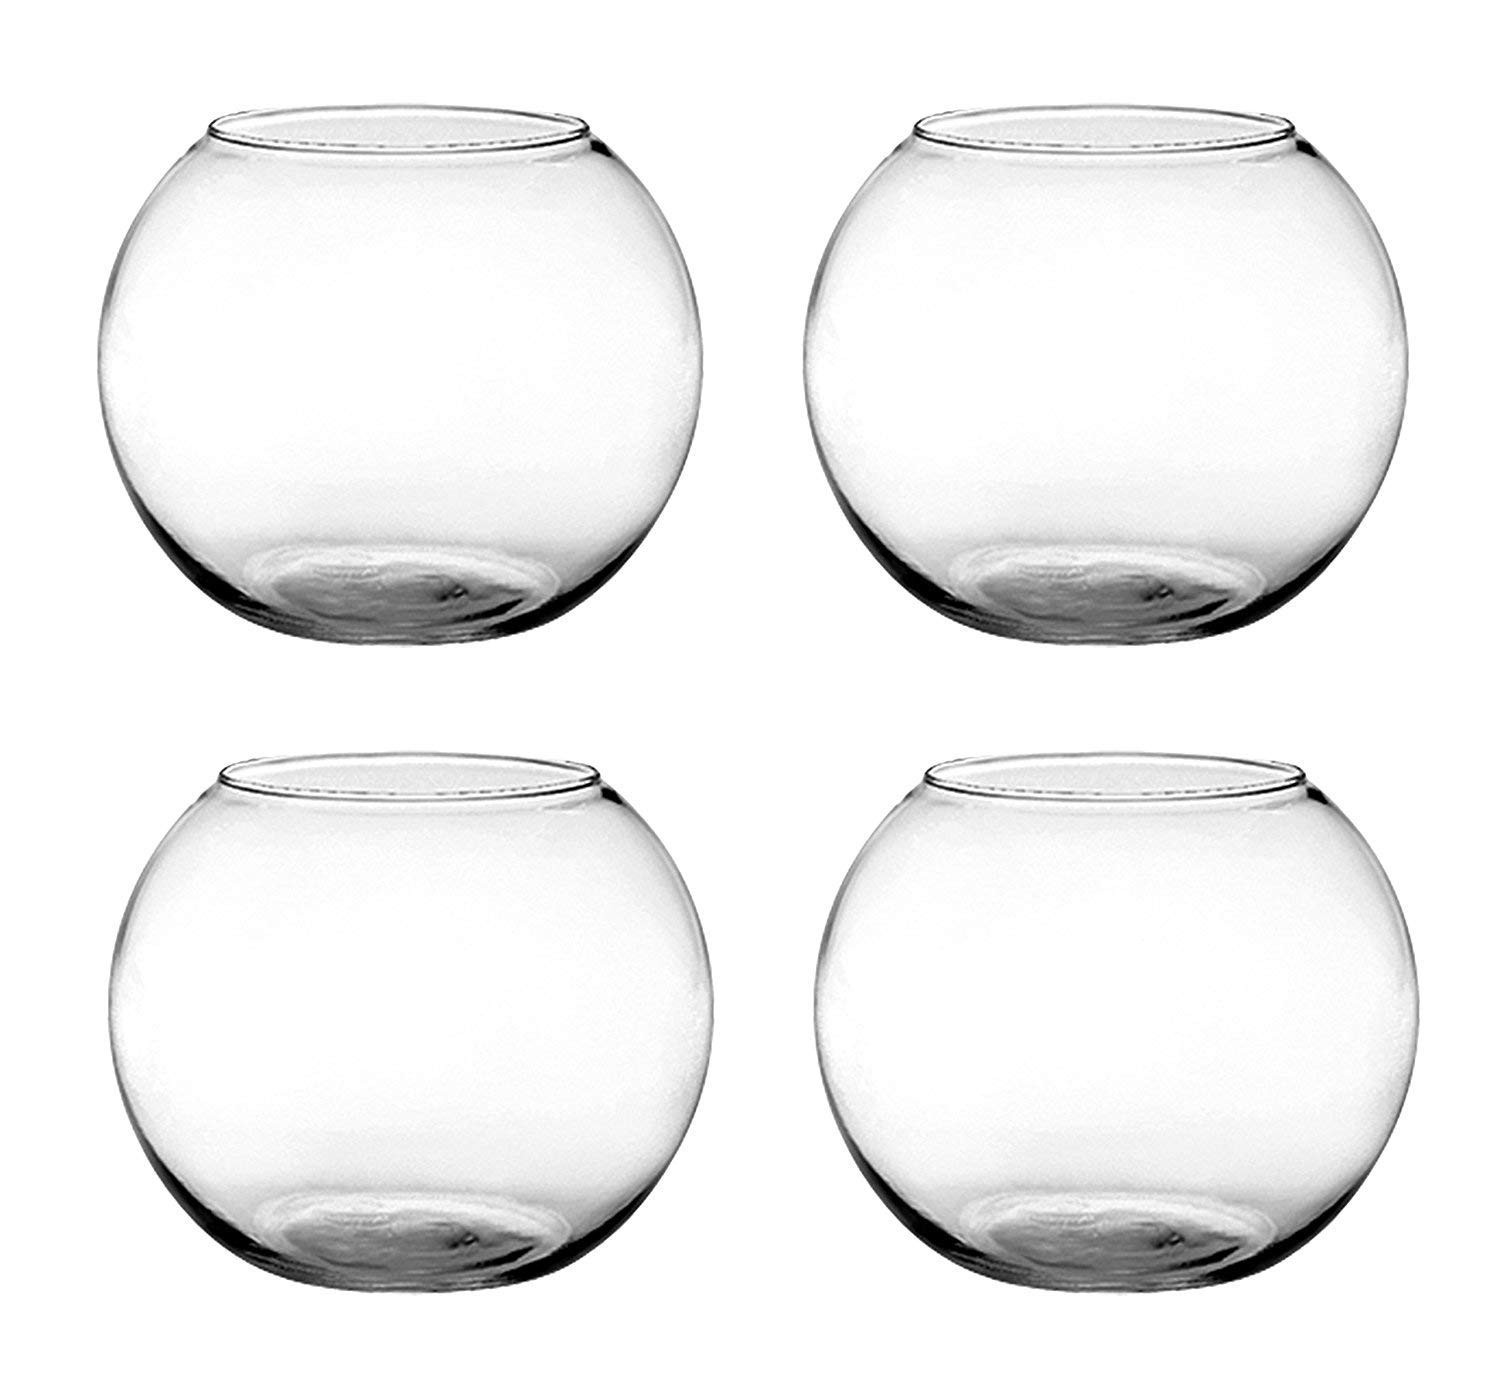 medium round glass vase of amazon com floral supply online set of 4 6 rose bowls glass in amazon com floral supply online set of 4 6 rose bowls glass round vases for weddings events decorating arrangements flowers office